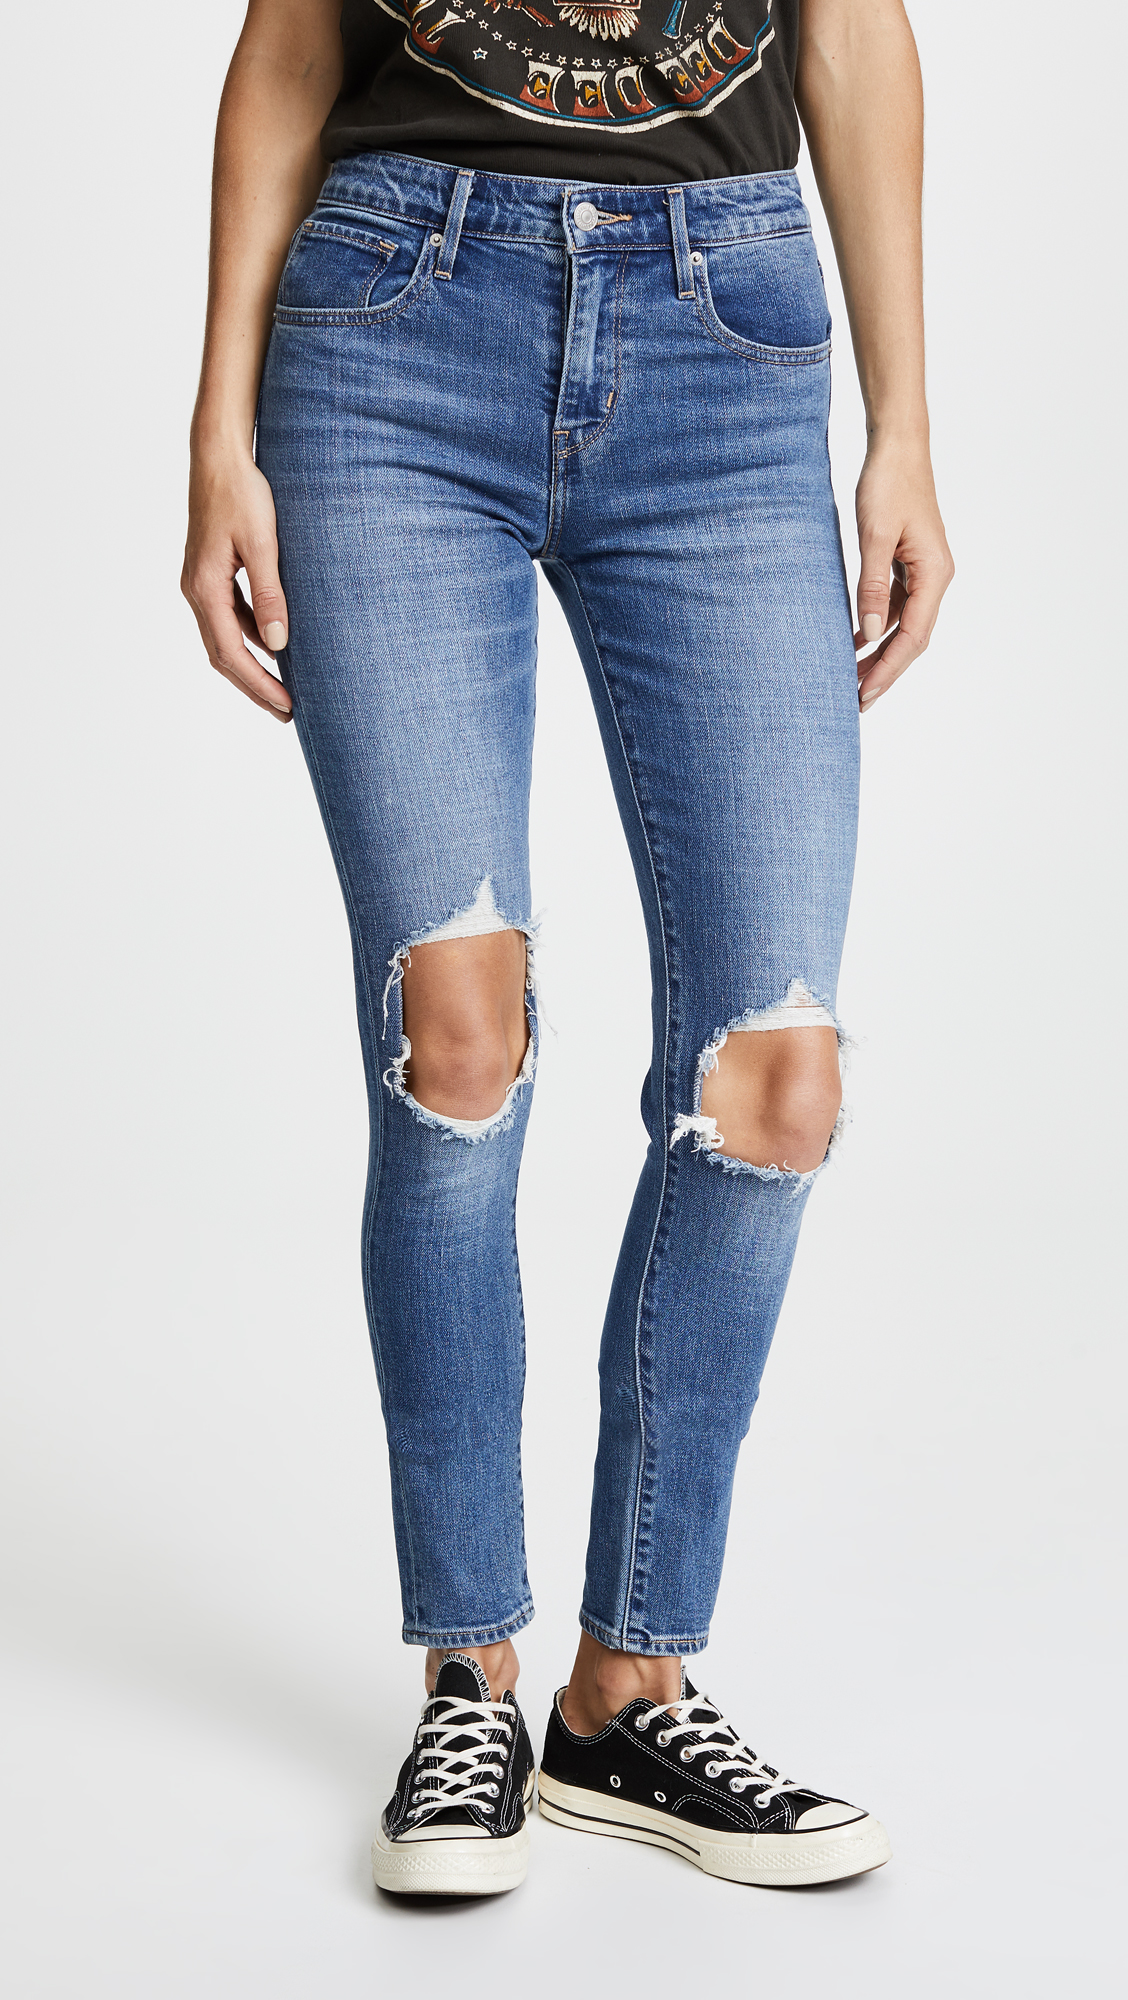 levi's, distressed denim, high rise jeans, skinny jeans